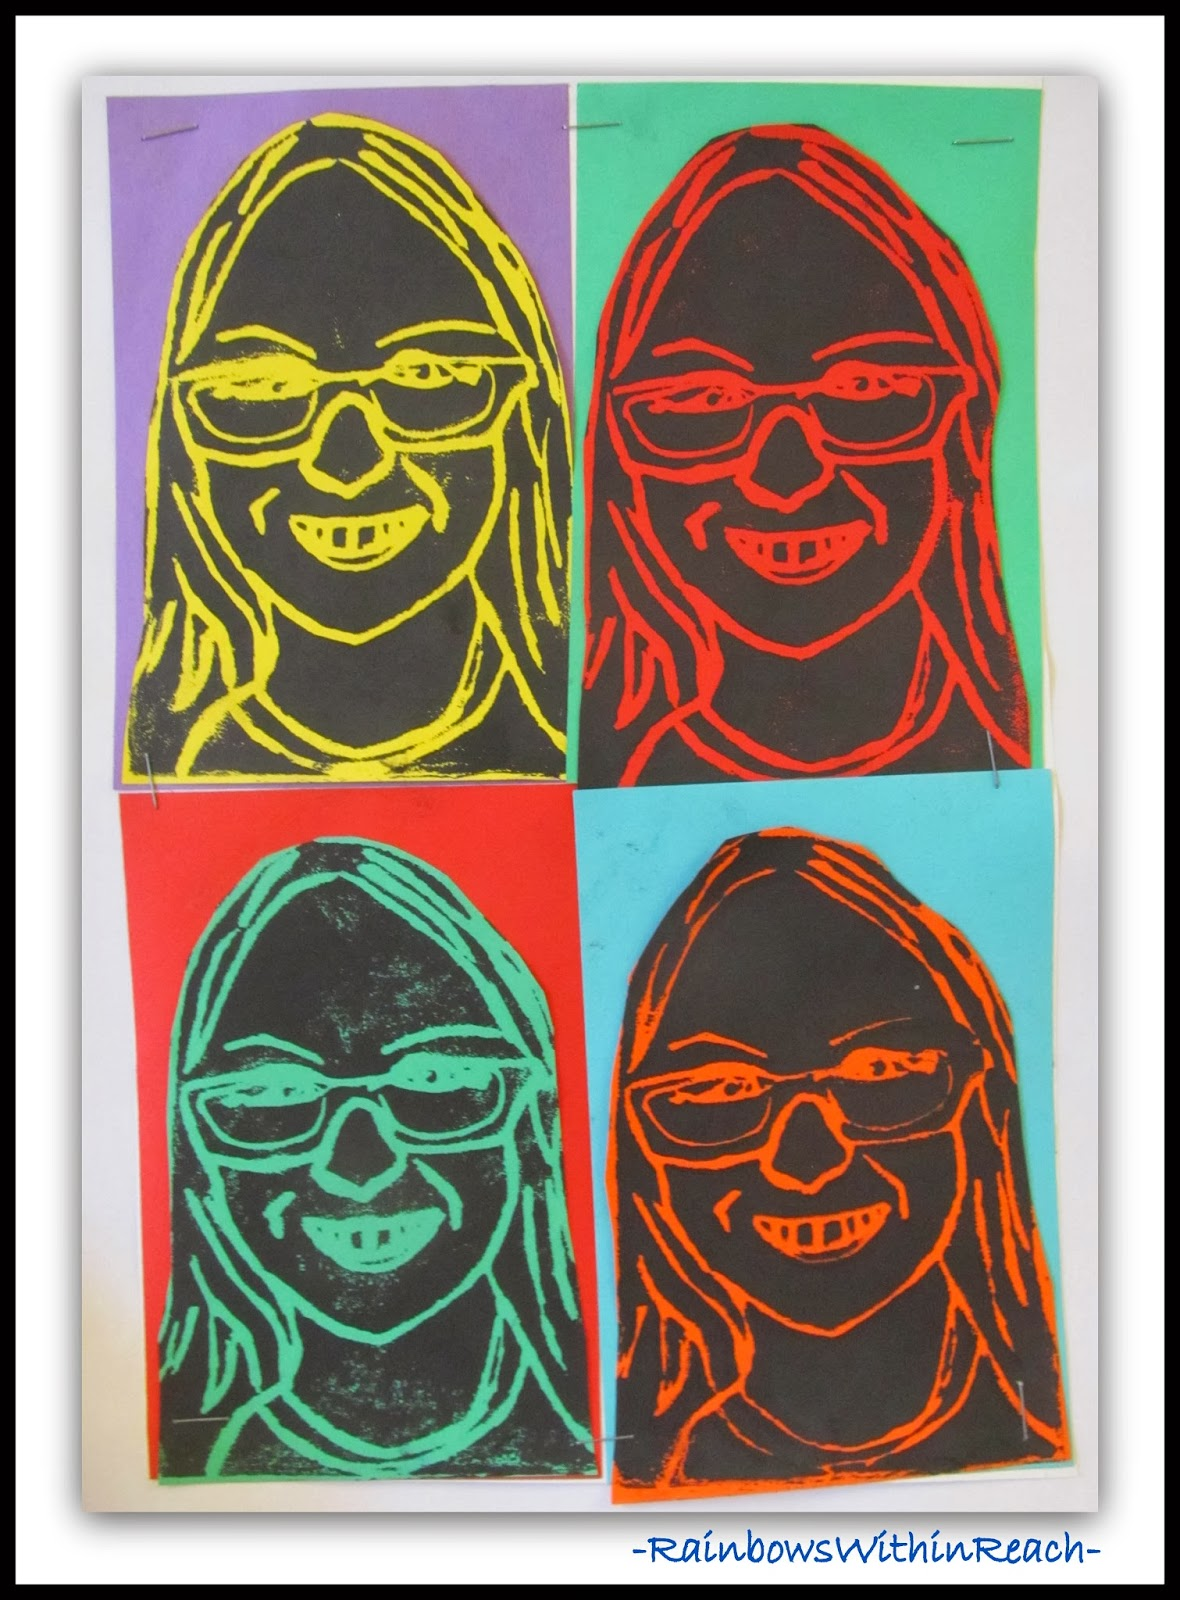 Andy Warhol Inspired Self Portrait Printmaking at RainbowsWithinReach